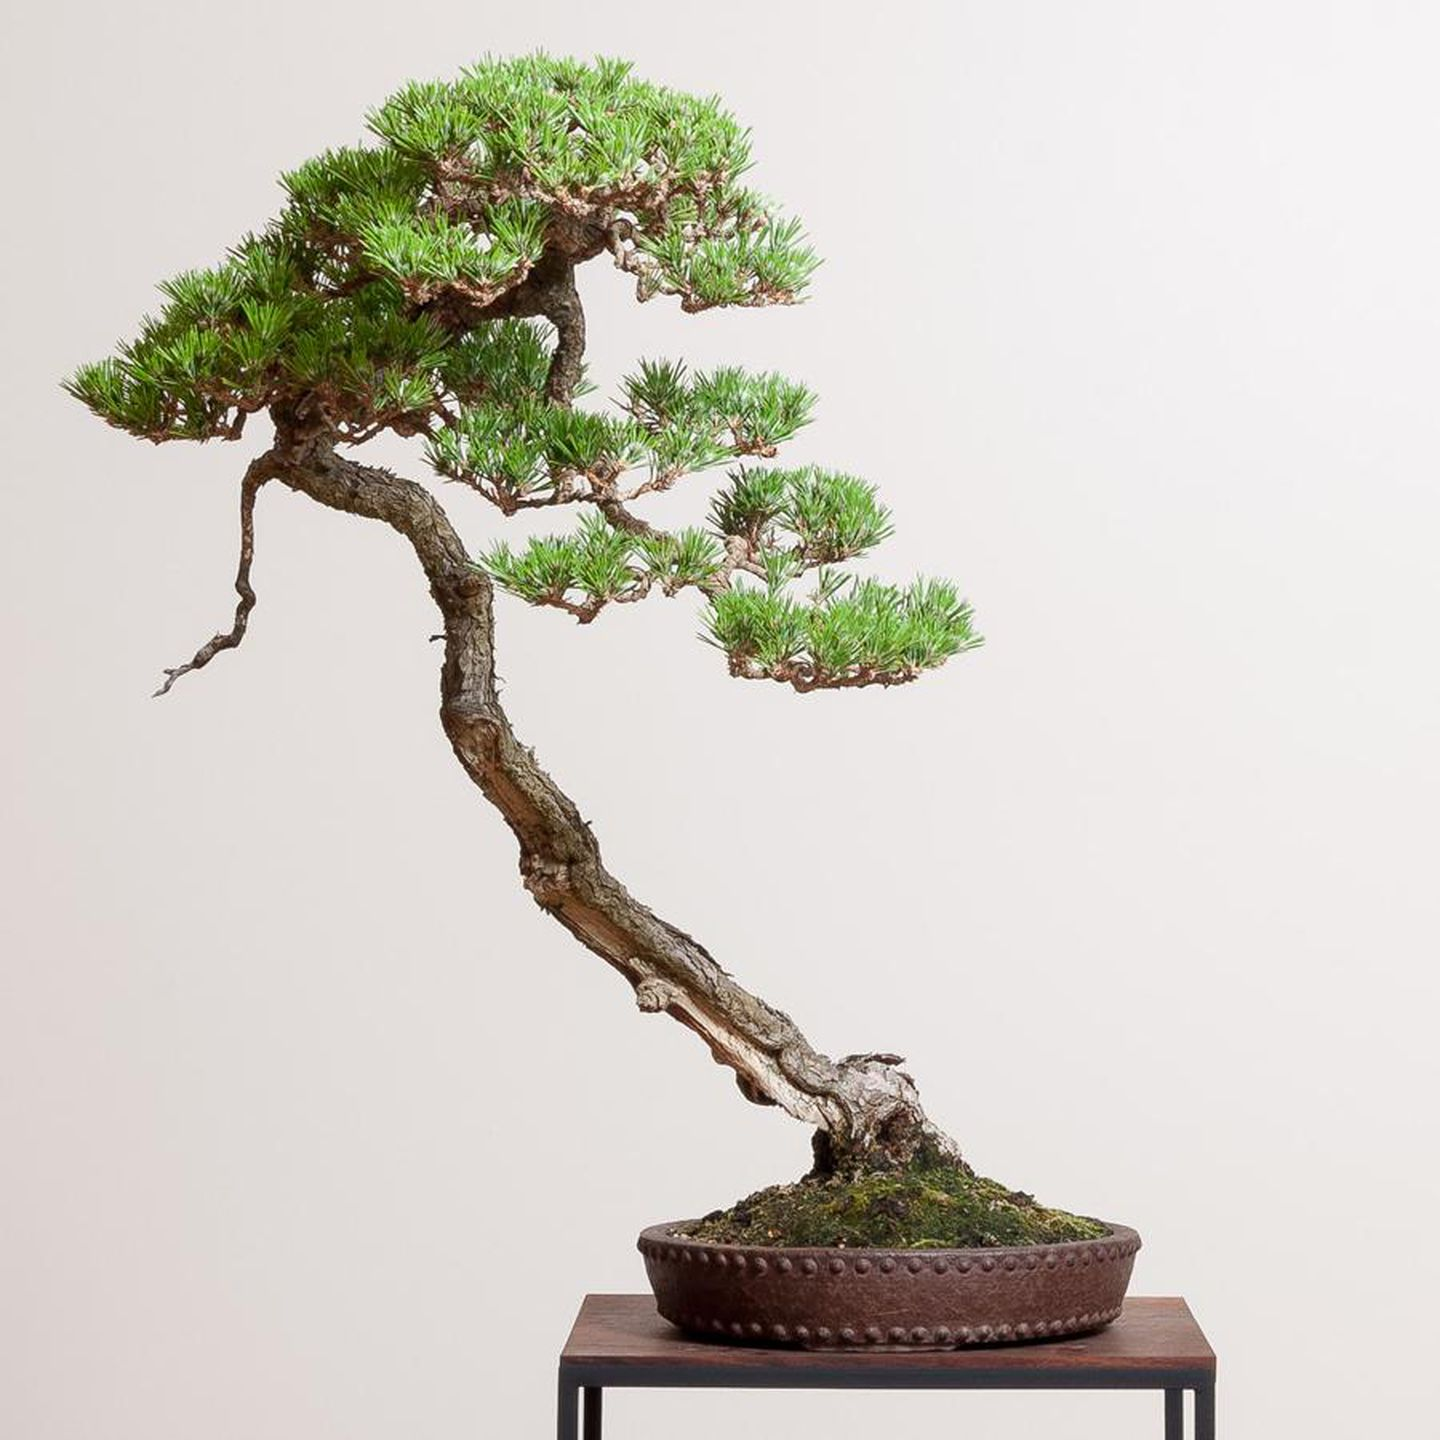 Slide Show Bonsai Mirai Pioneers A New High Design Style Of Distinctly American Bonsai Opb